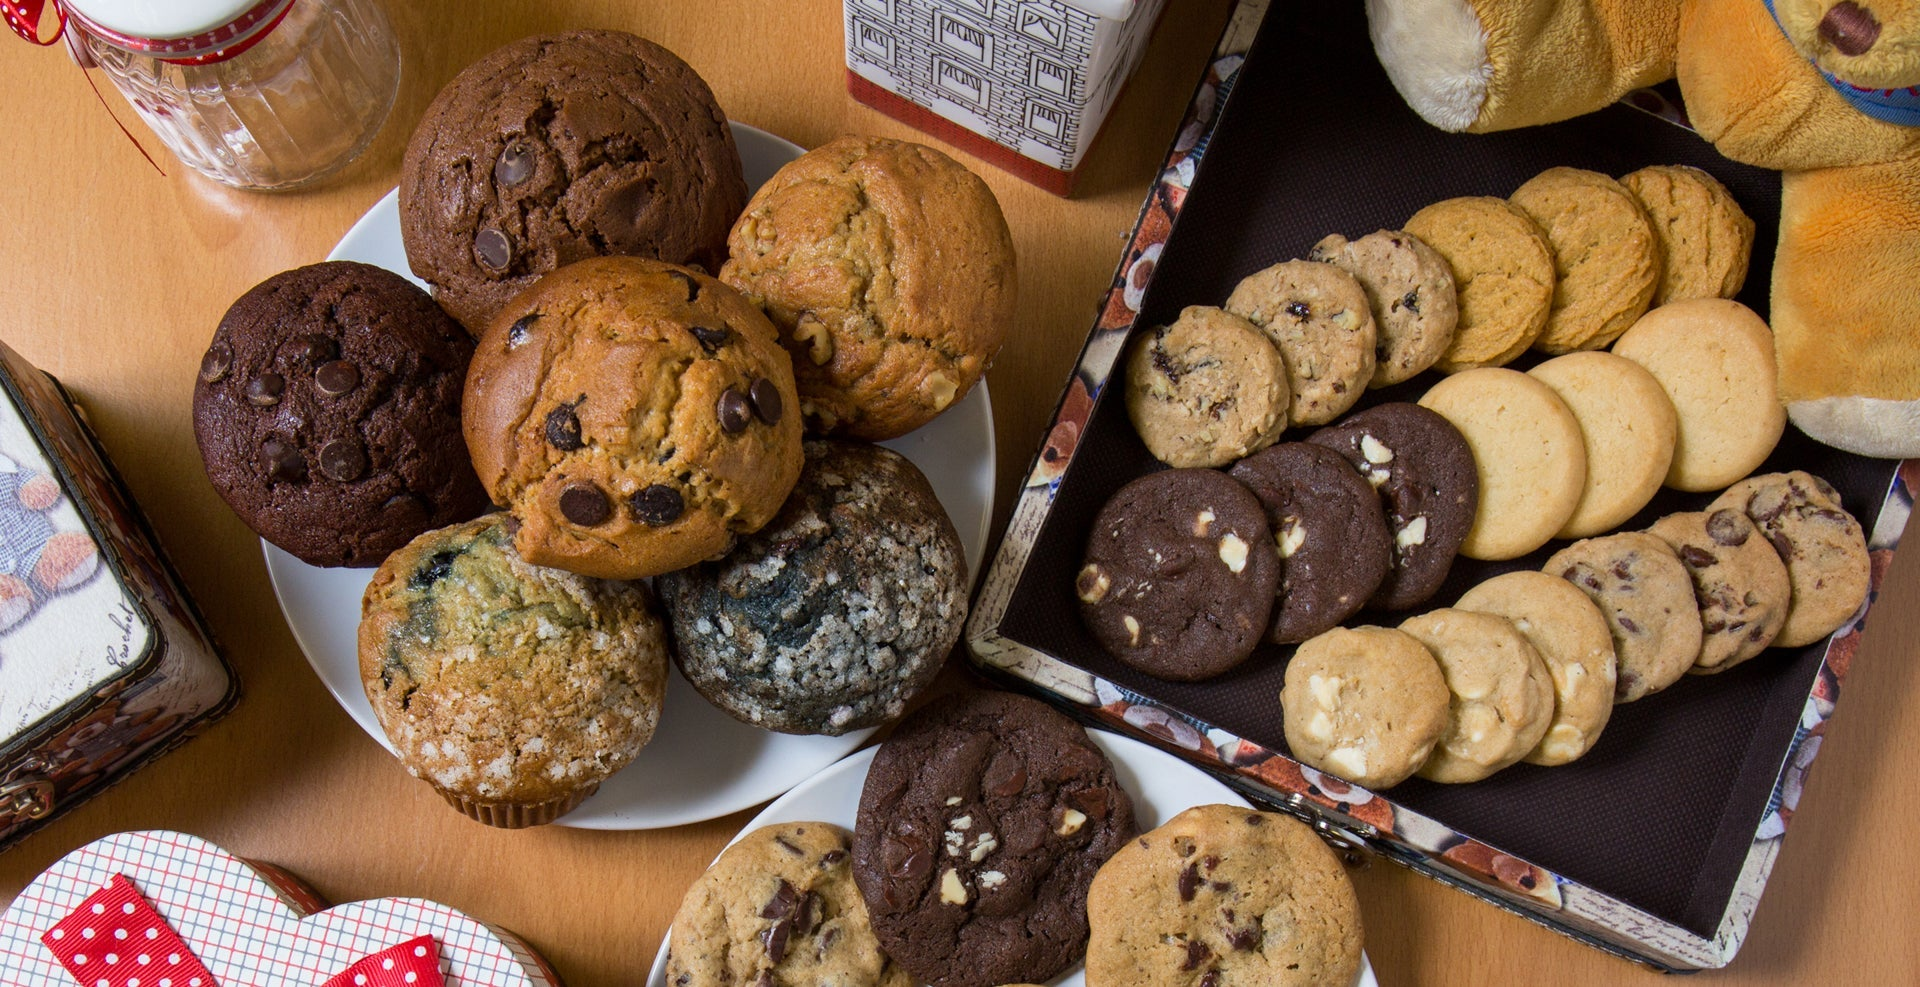 Mrs. Fields Cookies 菲爾斯曲奇專賣店 delivery from Central - Order with Deliveroo